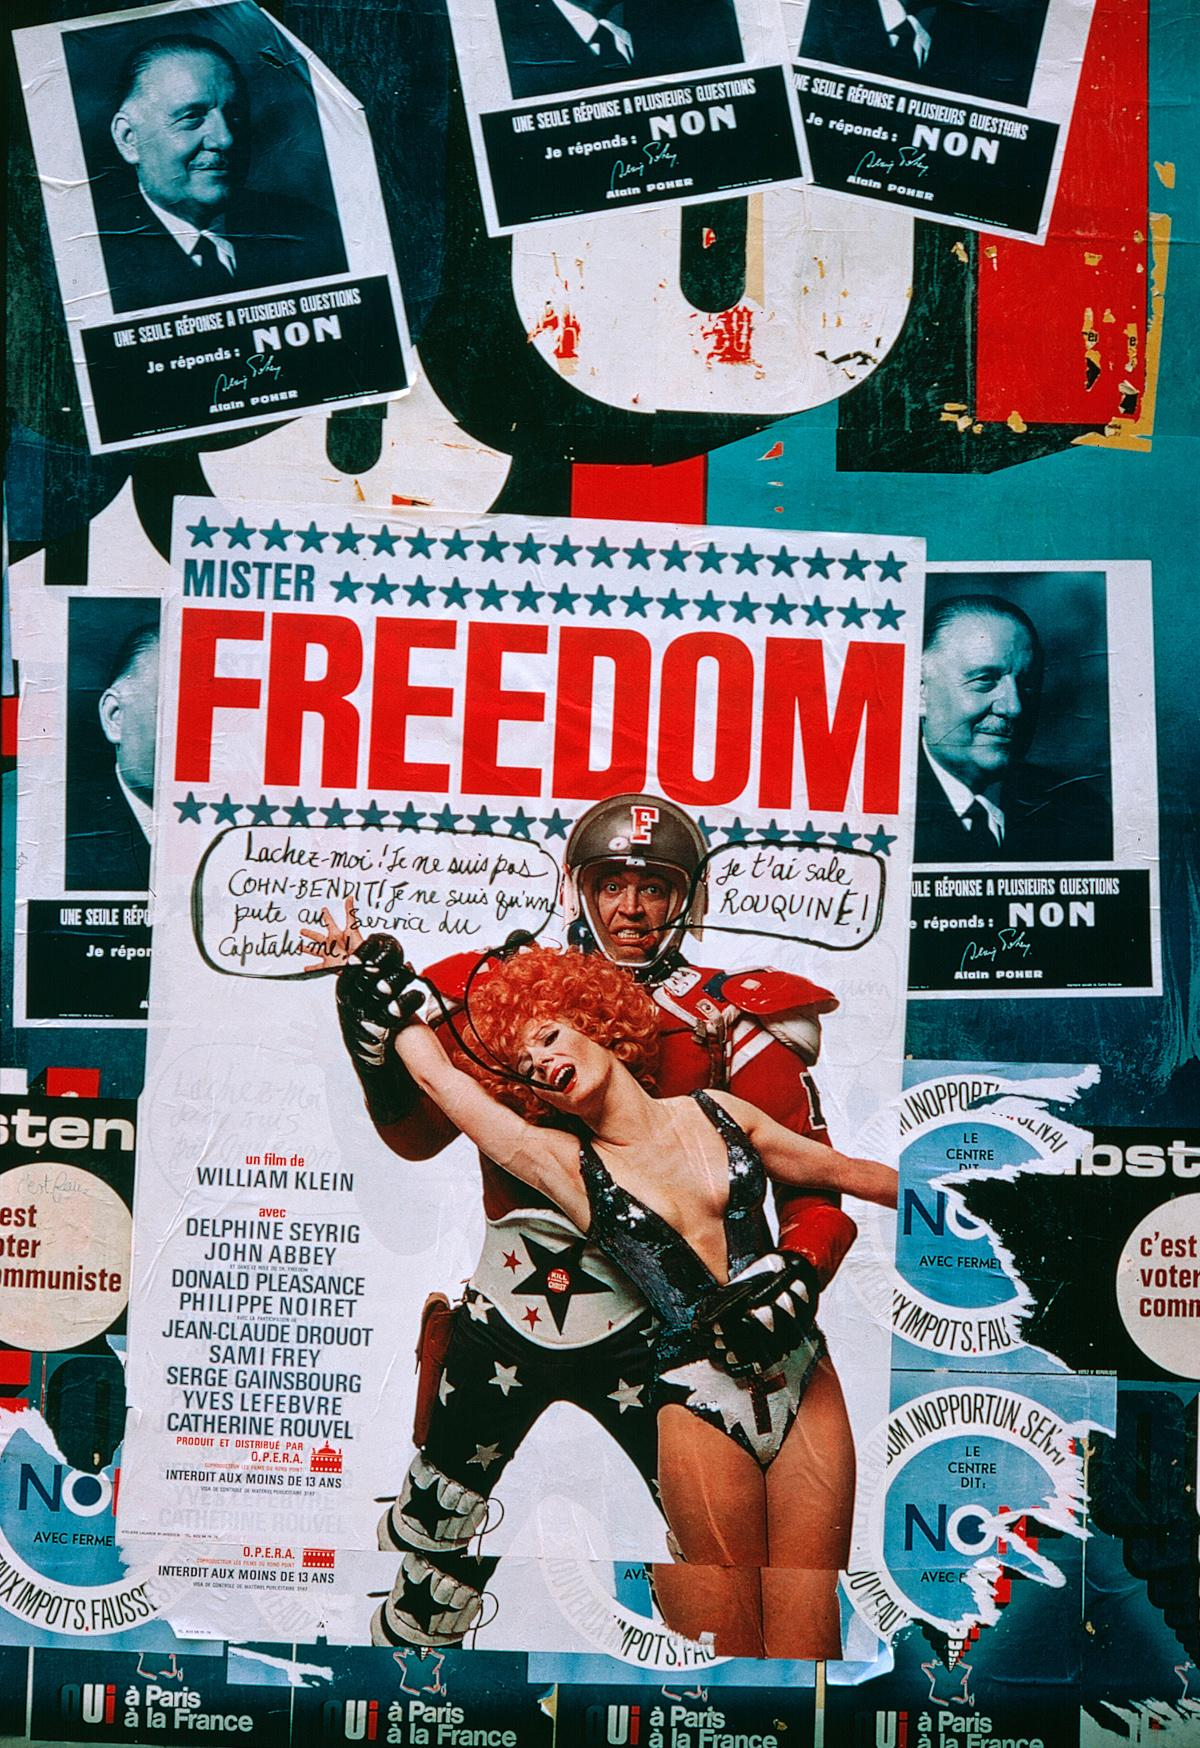 Poster for the film Mister Freedom, 1967